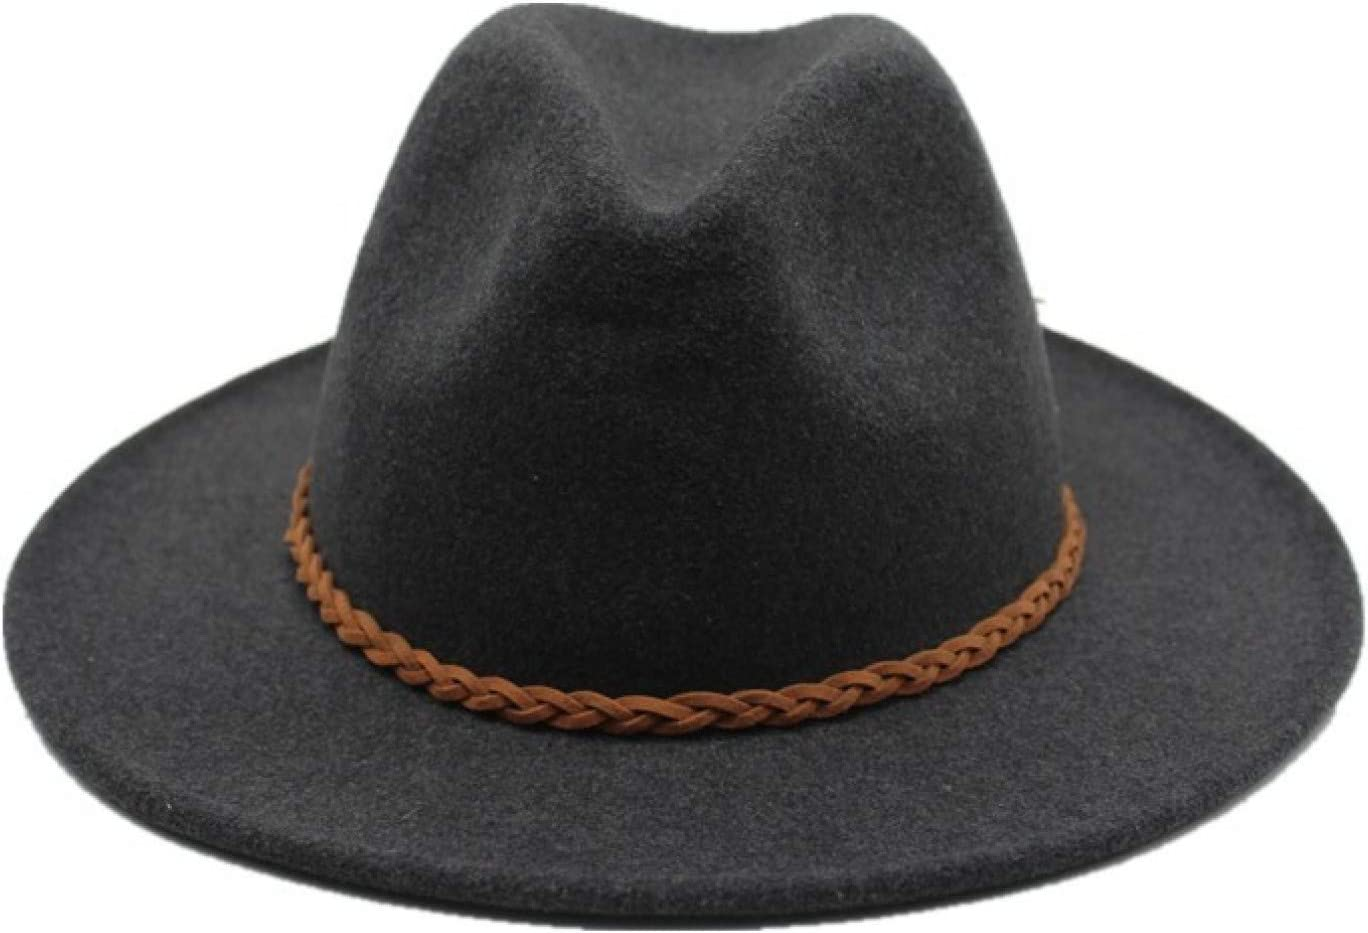 BAJIE Fedora Wool Felt Hat With Ribbon Band Jazz Formal Top Hat For Men And Women